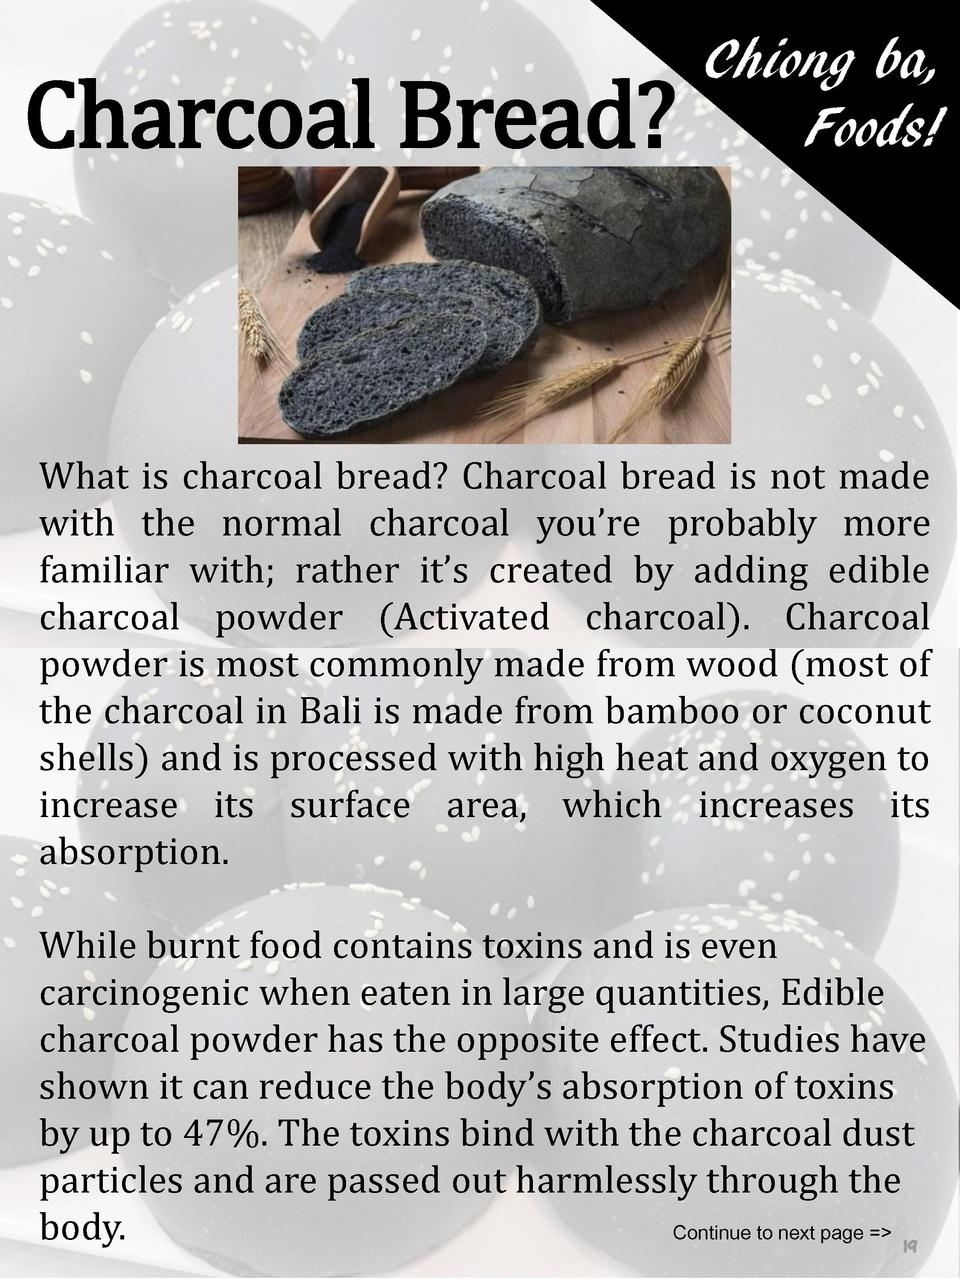 Charcoal Bread   Chiong ba, Foods   What is charcoal bread  Charcoal bread is not made with the normal charcoal you   re p...